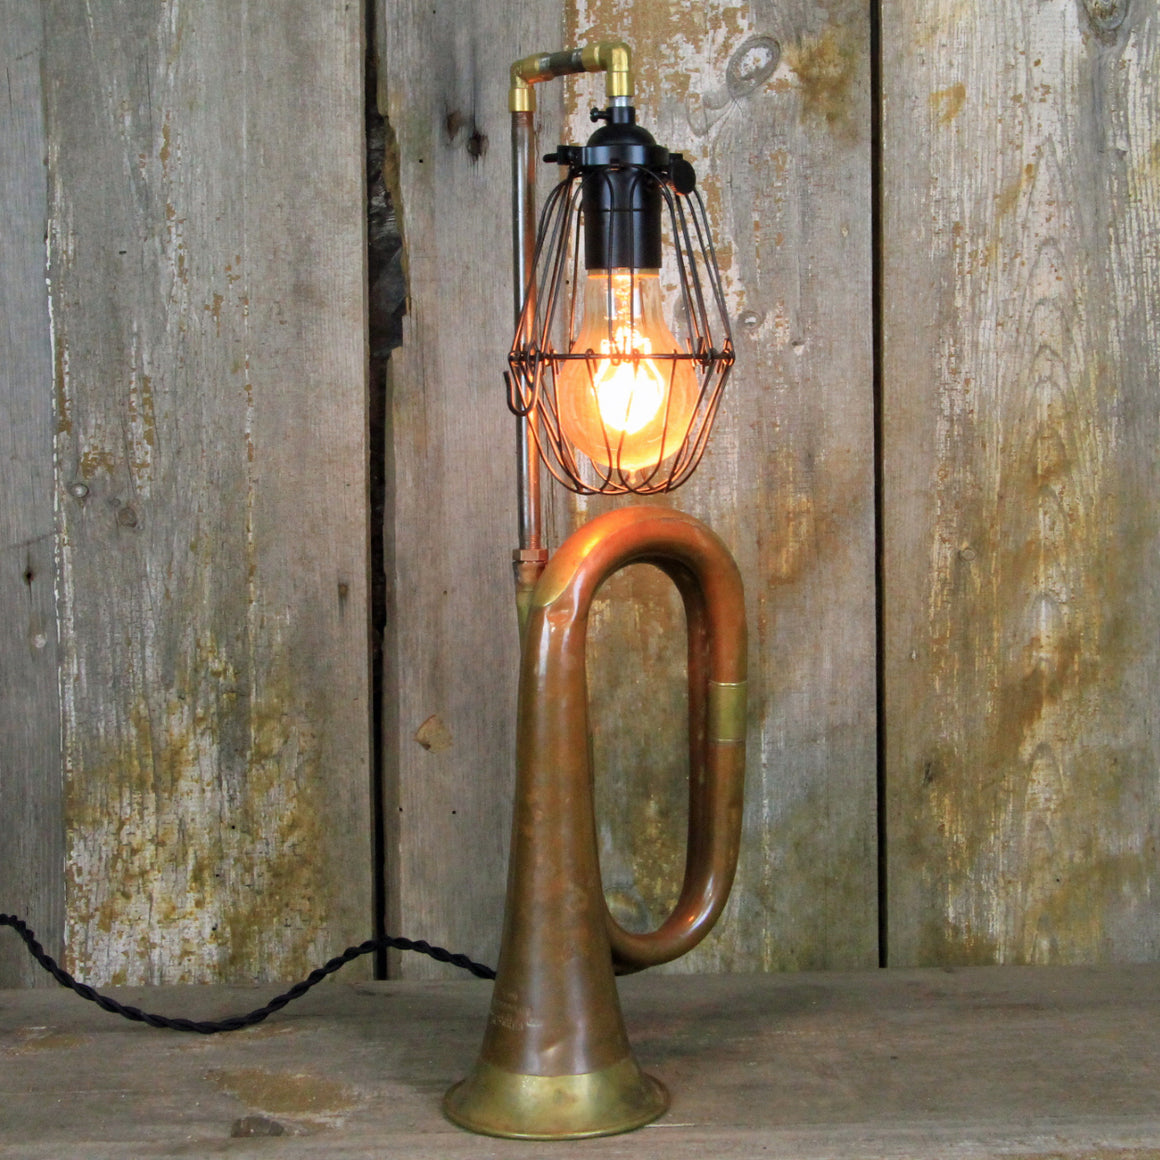 Music Lover's Desk Lamp - Bugle Table Lamp with Steampunk Style # 277 - The Lighting Works